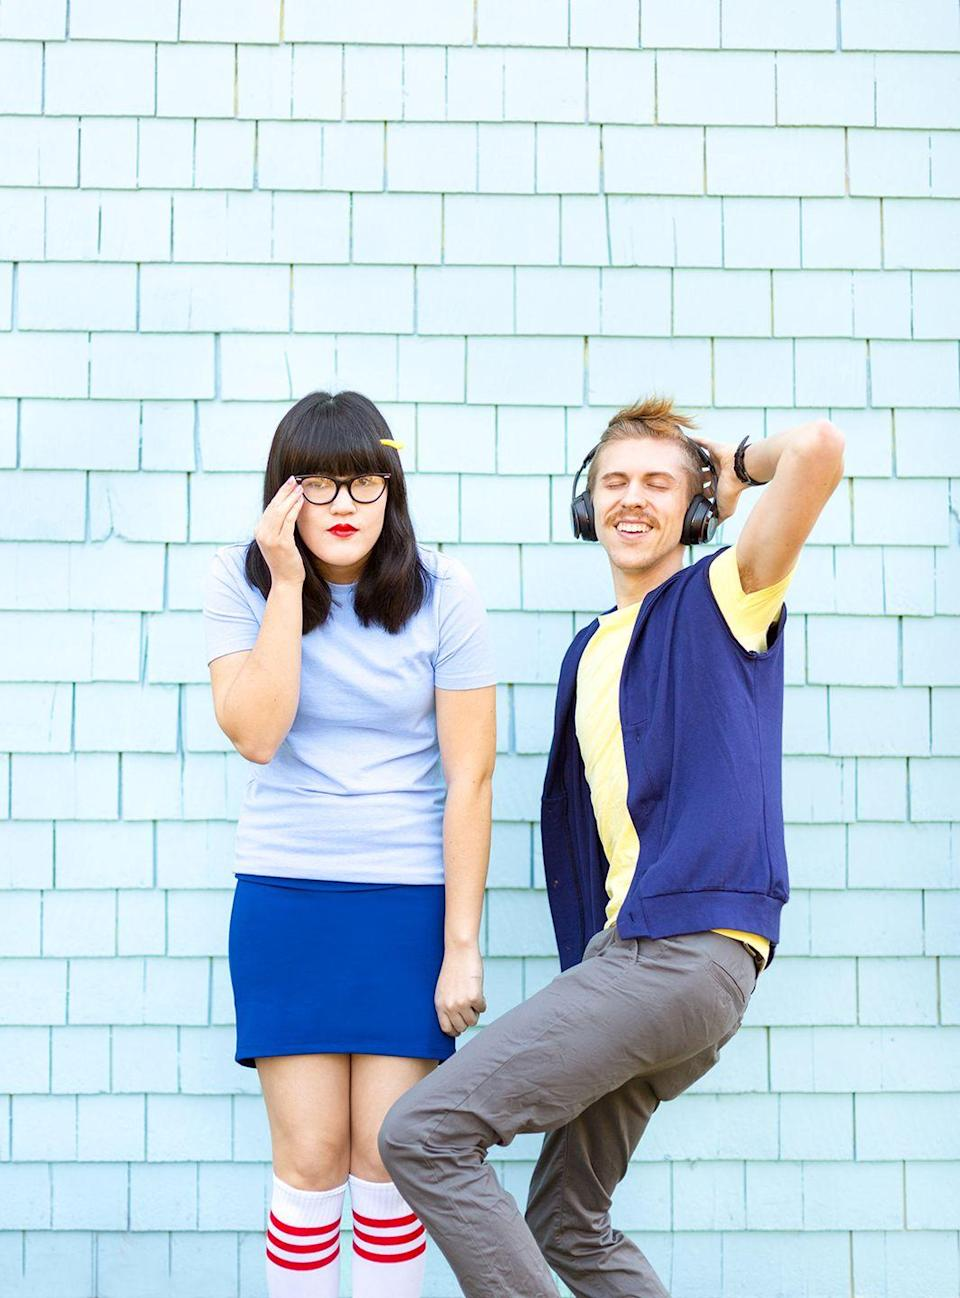 """<p>Tina Belcher is always finding unusual ways to express her love to Jimmy Pesto Jr., but that doesn't mean you and your best friend (or partner) should follow her ways on Halloween. Before showing off this genius look, grab a burger for inspiration.</p><p><a class=""""link rapid-noclick-resp"""" href=""""https://www.amazon.com/Zando-Stripe-Thigh-high-Stockings-Cosplay/dp/B07MCTYW51/ref=sr_1_16?dchild=1&keywords=knee-high+socks+red&psc=1&qid=1571343503&sr=8-16&tag=syn-yahoo-20&ascsubtag=%5Bartid%7C10055.g.29516206%5Bsrc%7Cyahoo-us"""" rel=""""nofollow noopener"""" target=""""_blank"""" data-ylk=""""slk:SHOP KNEE-HIGH SOCKS"""">SHOP KNEE-HIGH SOCKS</a></p><p><a class=""""link rapid-noclick-resp"""" href=""""https://www.amazon.com/Bella-Canvas-Unisex-Triblend-Sleeve/dp/B07K1B9YZR/ref=sr_1_11?dchild=1&keywords=pale+yellow+t-shirt&psc=1&qid=1571343626&sr=8-11&tag=syn-yahoo-20&ascsubtag=%5Bartid%7C10055.g.29516206%5Bsrc%7Cyahoo-us"""" rel=""""nofollow noopener"""" target=""""_blank"""" data-ylk=""""slk:SHOP YELLOW T-SHIRTS"""">SHOP YELLOW T-SHIRTS</a> </p><p><em><a href=""""http://www.awwsam.com/2017/10/happy-halloween.html"""" rel=""""nofollow noopener"""" target=""""_blank"""" data-ylk=""""slk:Get the tutorial at Aww Sam »"""" class=""""link rapid-noclick-resp"""">Get the tutorial at Aww Sam »</a></em></p>"""